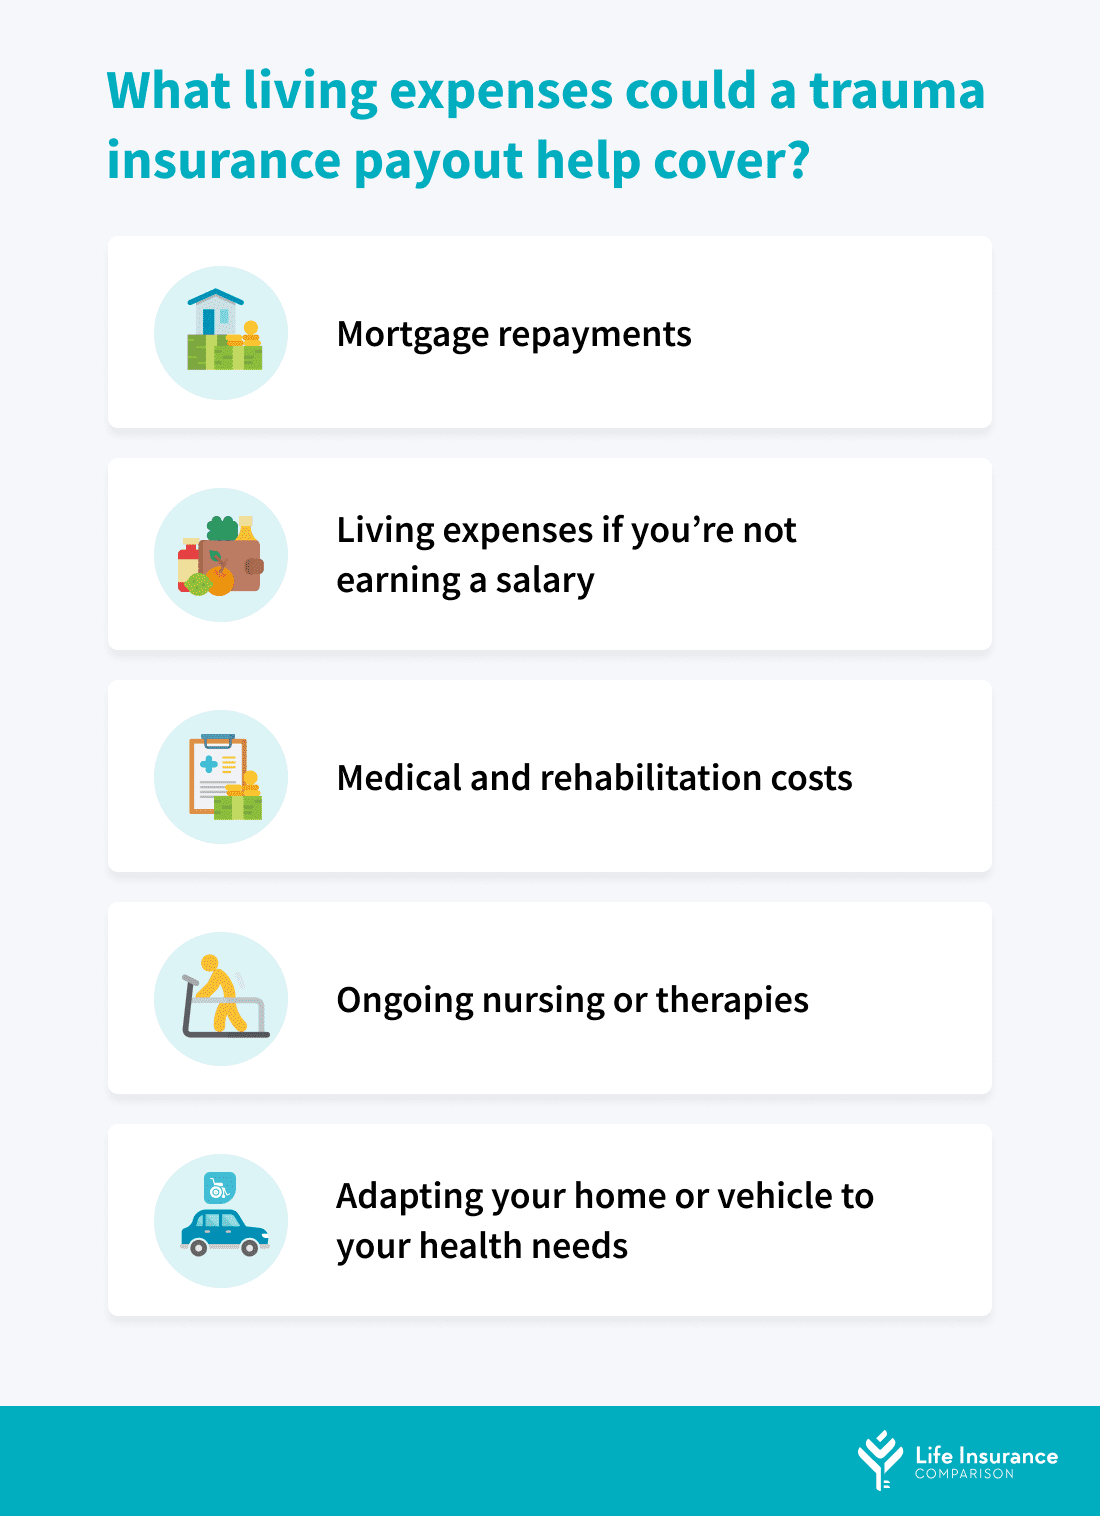 A table of what can trauma insurance help cover.